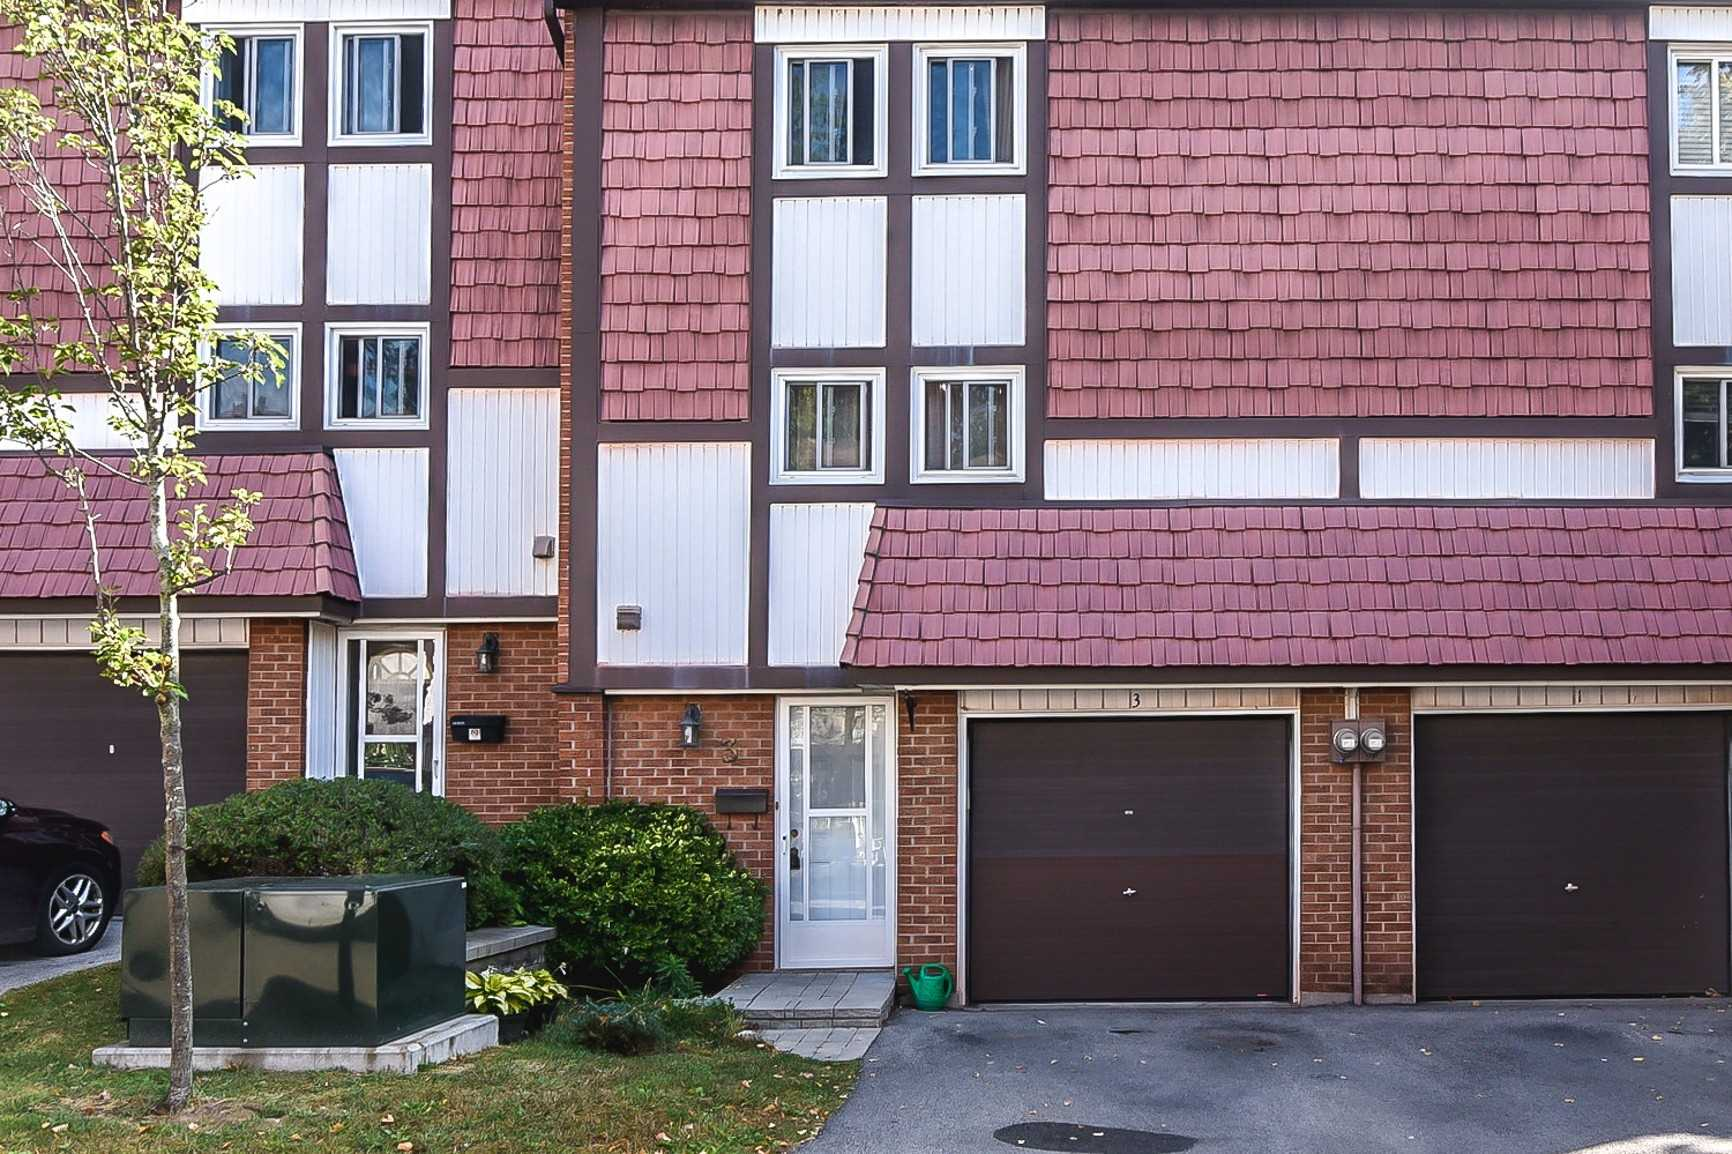 Spacious 3 Storey Townhome In Well Established & Desirable Dundas Community. Featuring Hardwood Flooring & Tiles Throughout, Walk Out To Private Backyard Surrounded By Trees. Generous Bedroom Sizes, 1.5 Bath W/ Dining Room Overlooking The Sunken Living Room And A Large Eat In Kitchen. Walk To Schools, Mins Drive To Downtown Dundas & Mcmaster University & Hospital, Shopping & More! Don't Miss Out On This Fantastic Opportunity! Rsa.